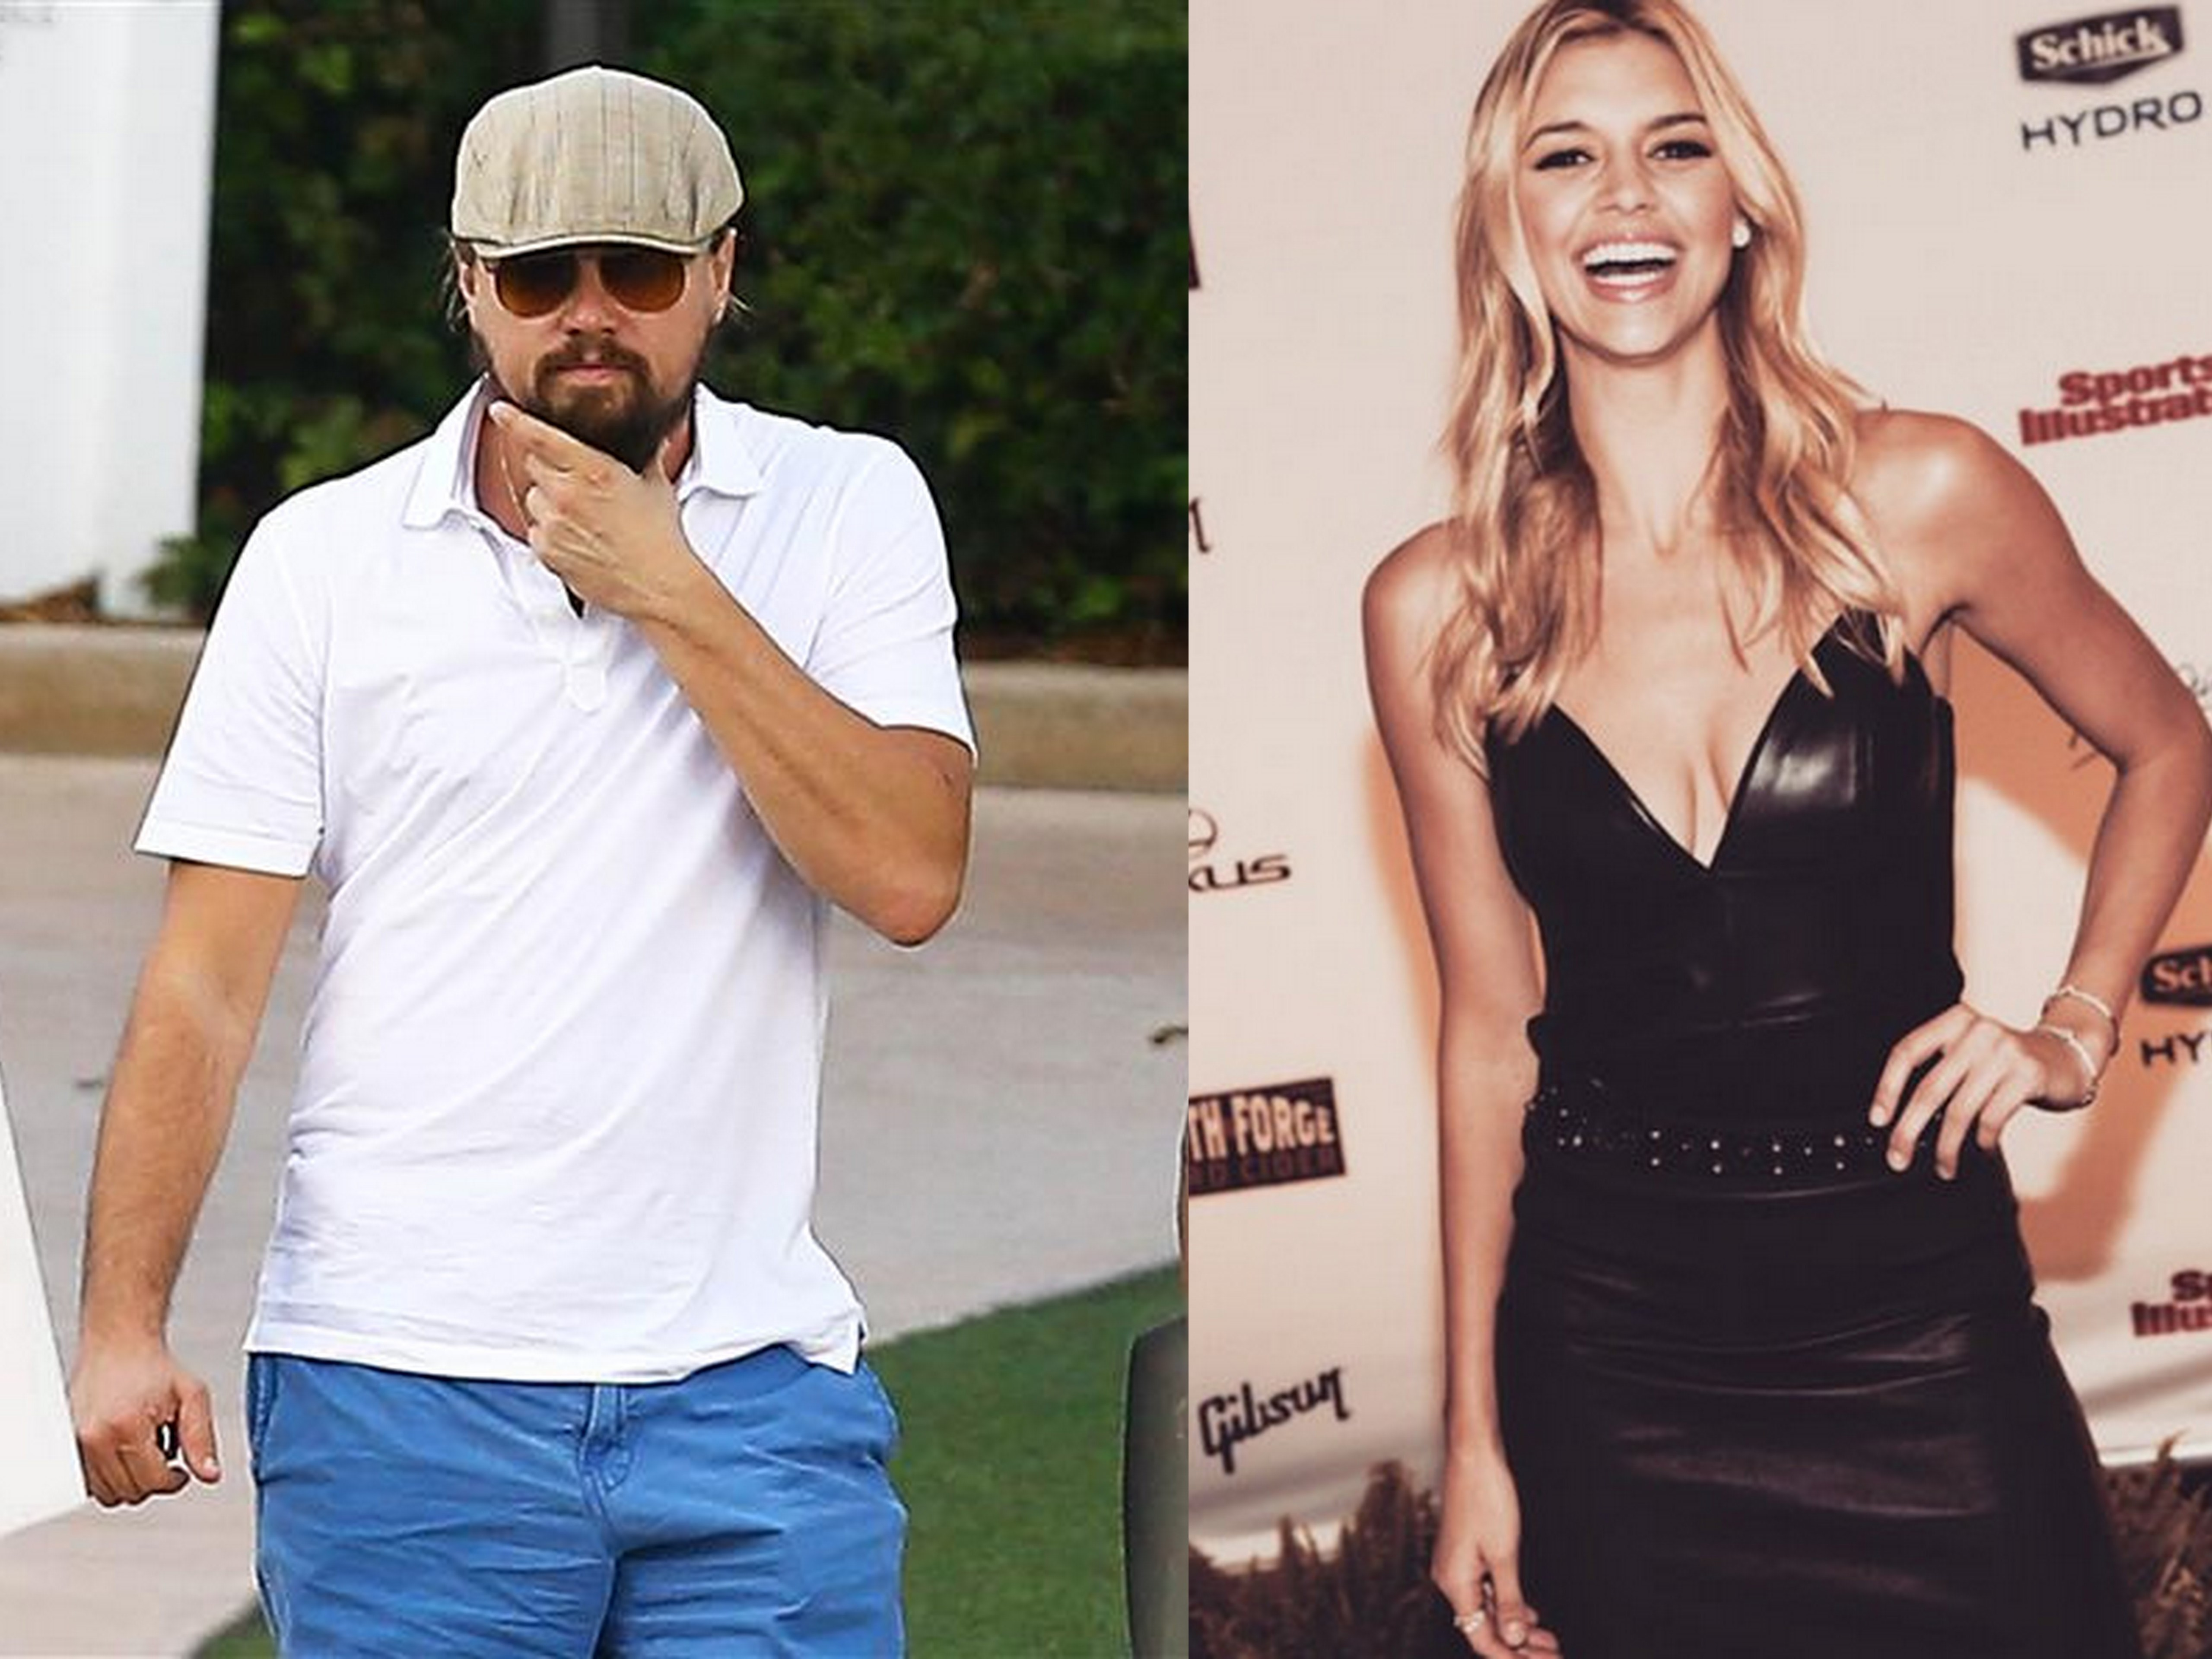 leonardo single men Apparently leonardo dicaprio has the standard dad bod let these celeb dads show him what a real dad bod looks like.